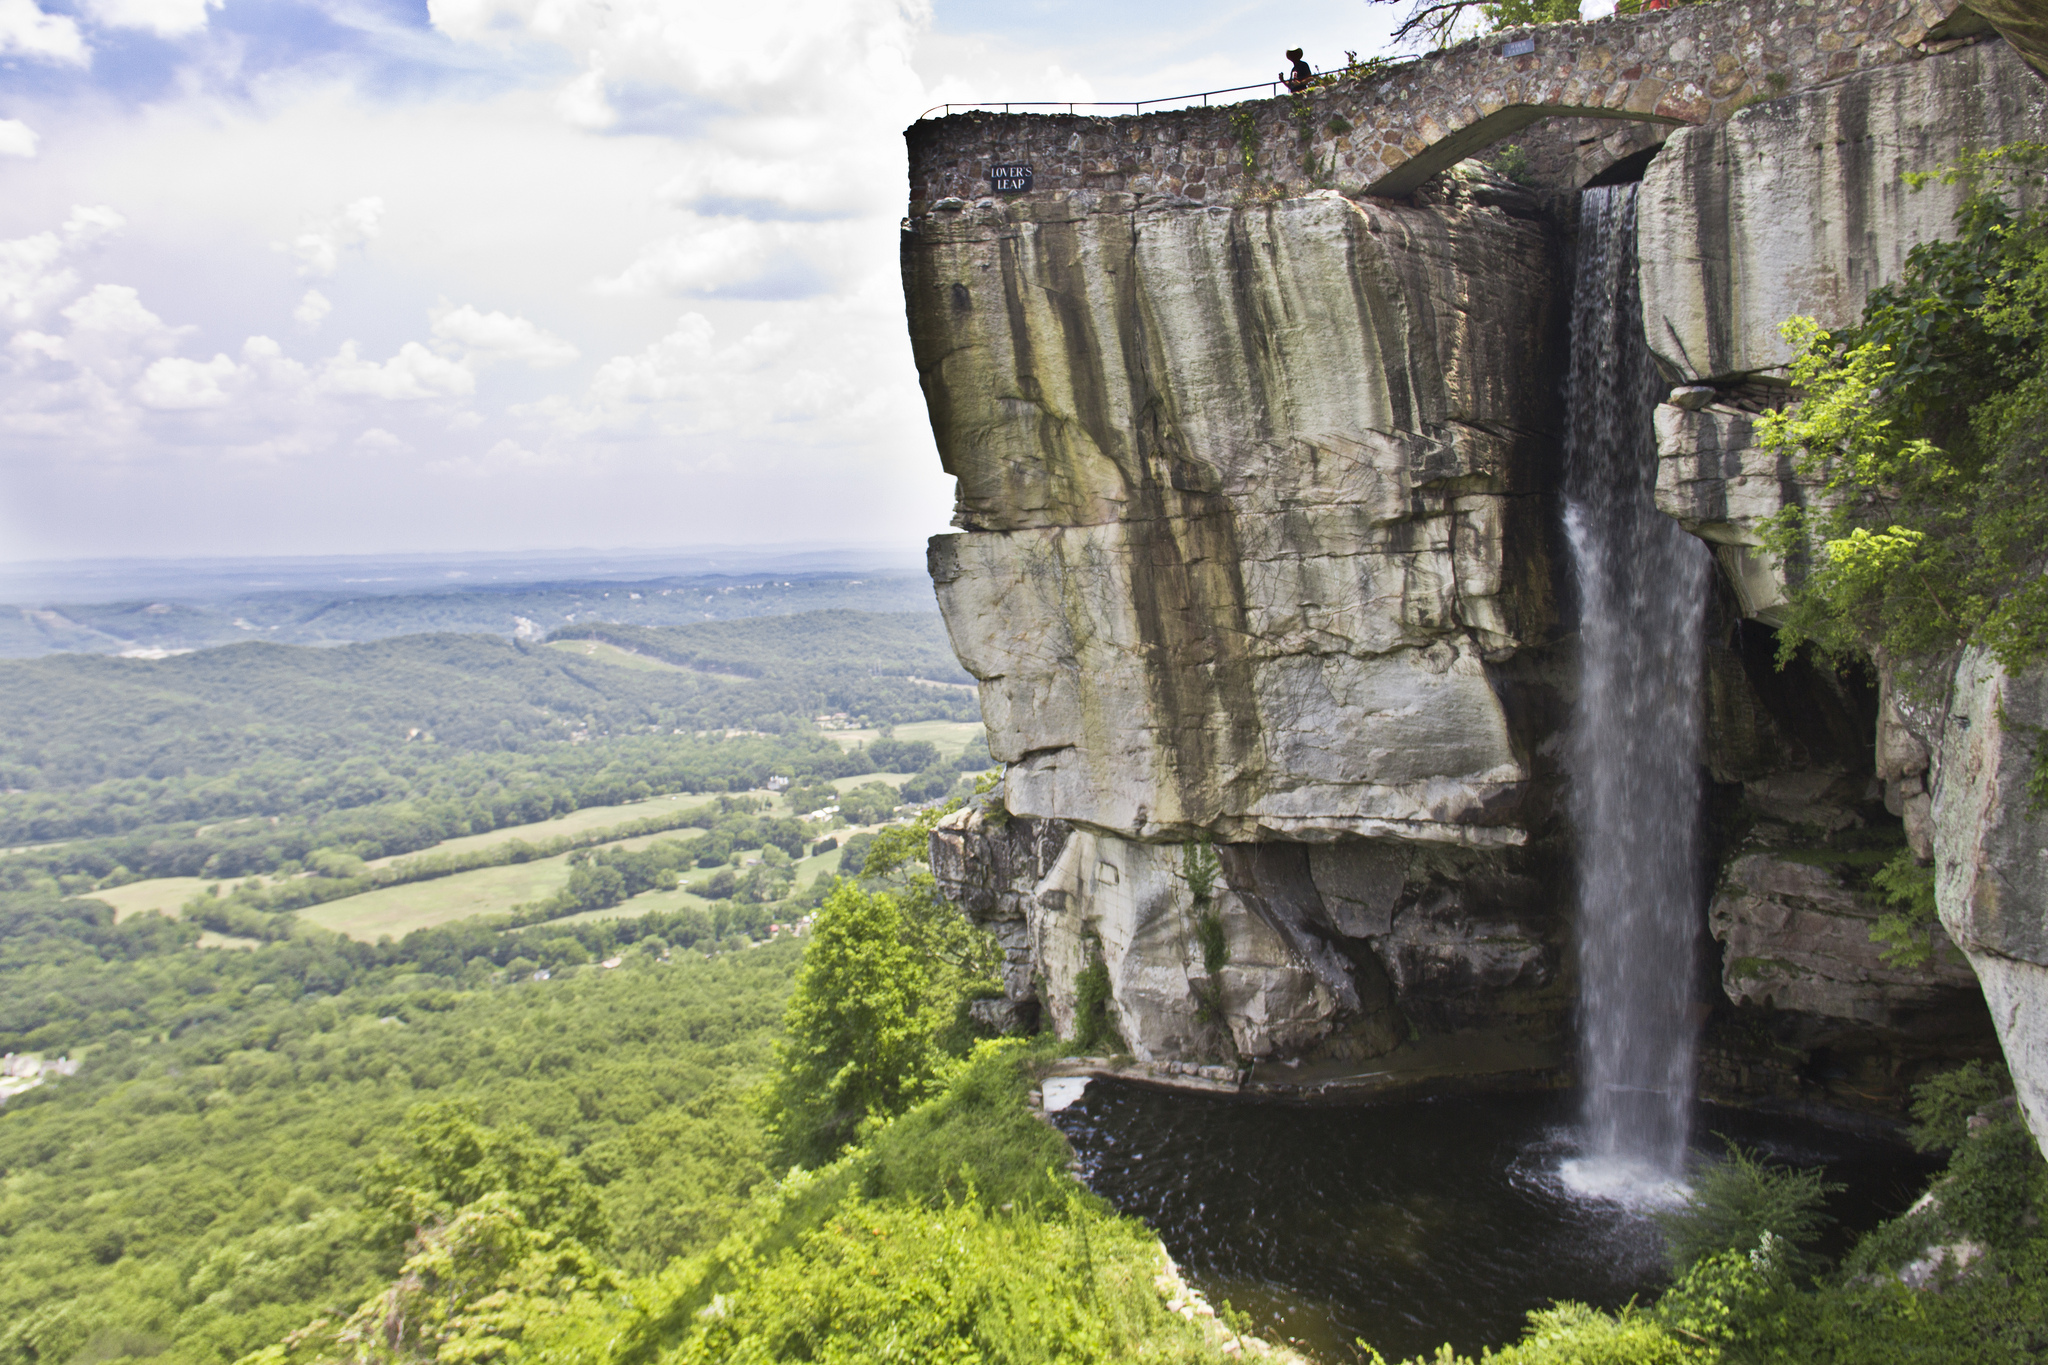 12 Places In Tennessee With The Most Breathtaking Scenery